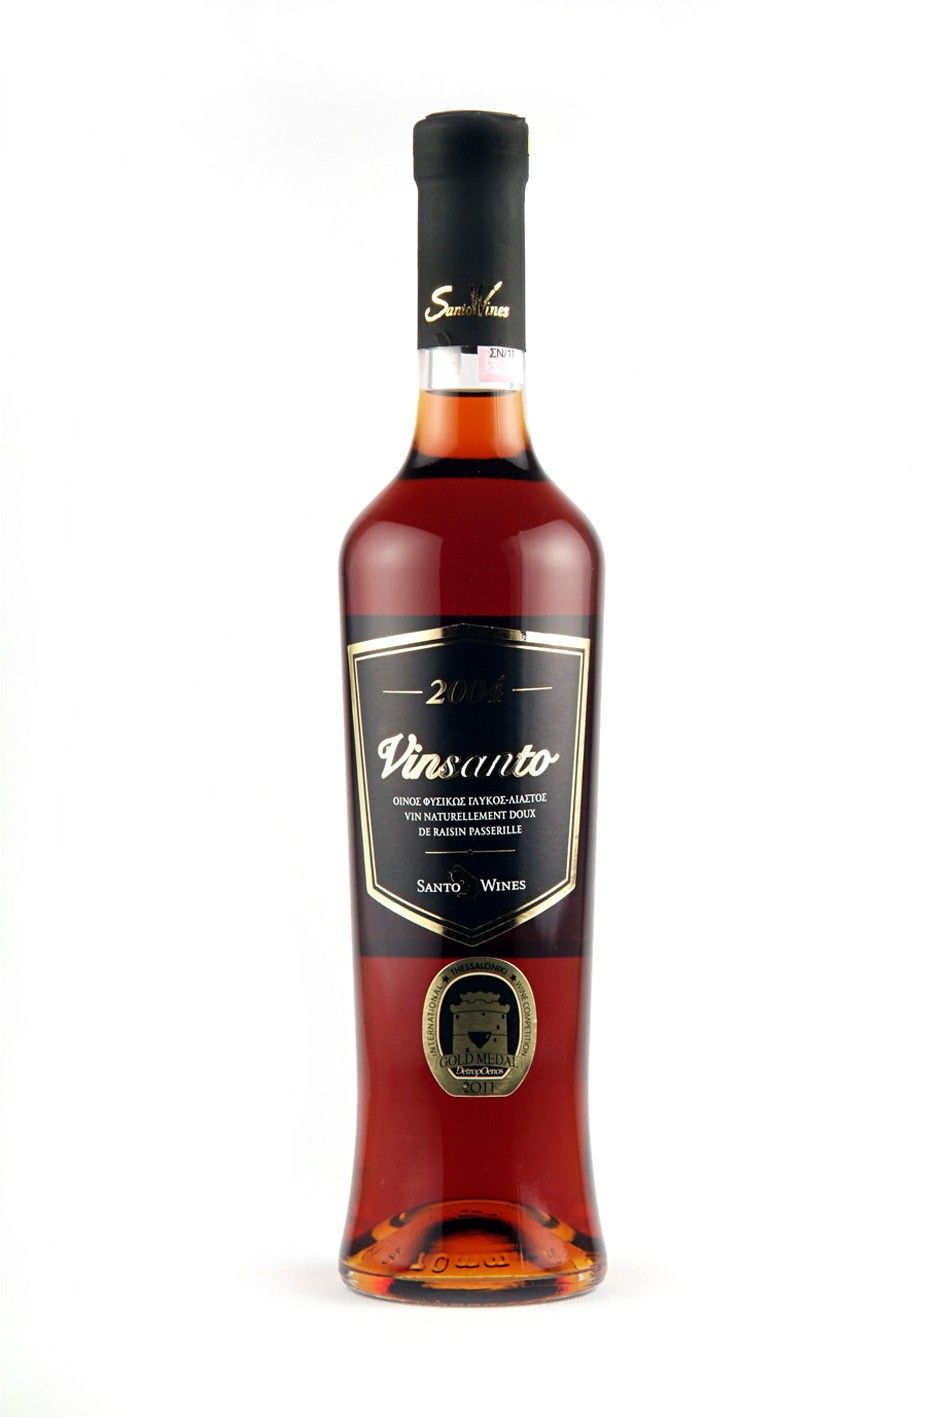 Santorini Vinsanto Dessert Wine Www Liquorlist Com The Marketplace For Adults With Taste Liquorlistcom Liquorlist Wine Desserts Wine Store Liquor List